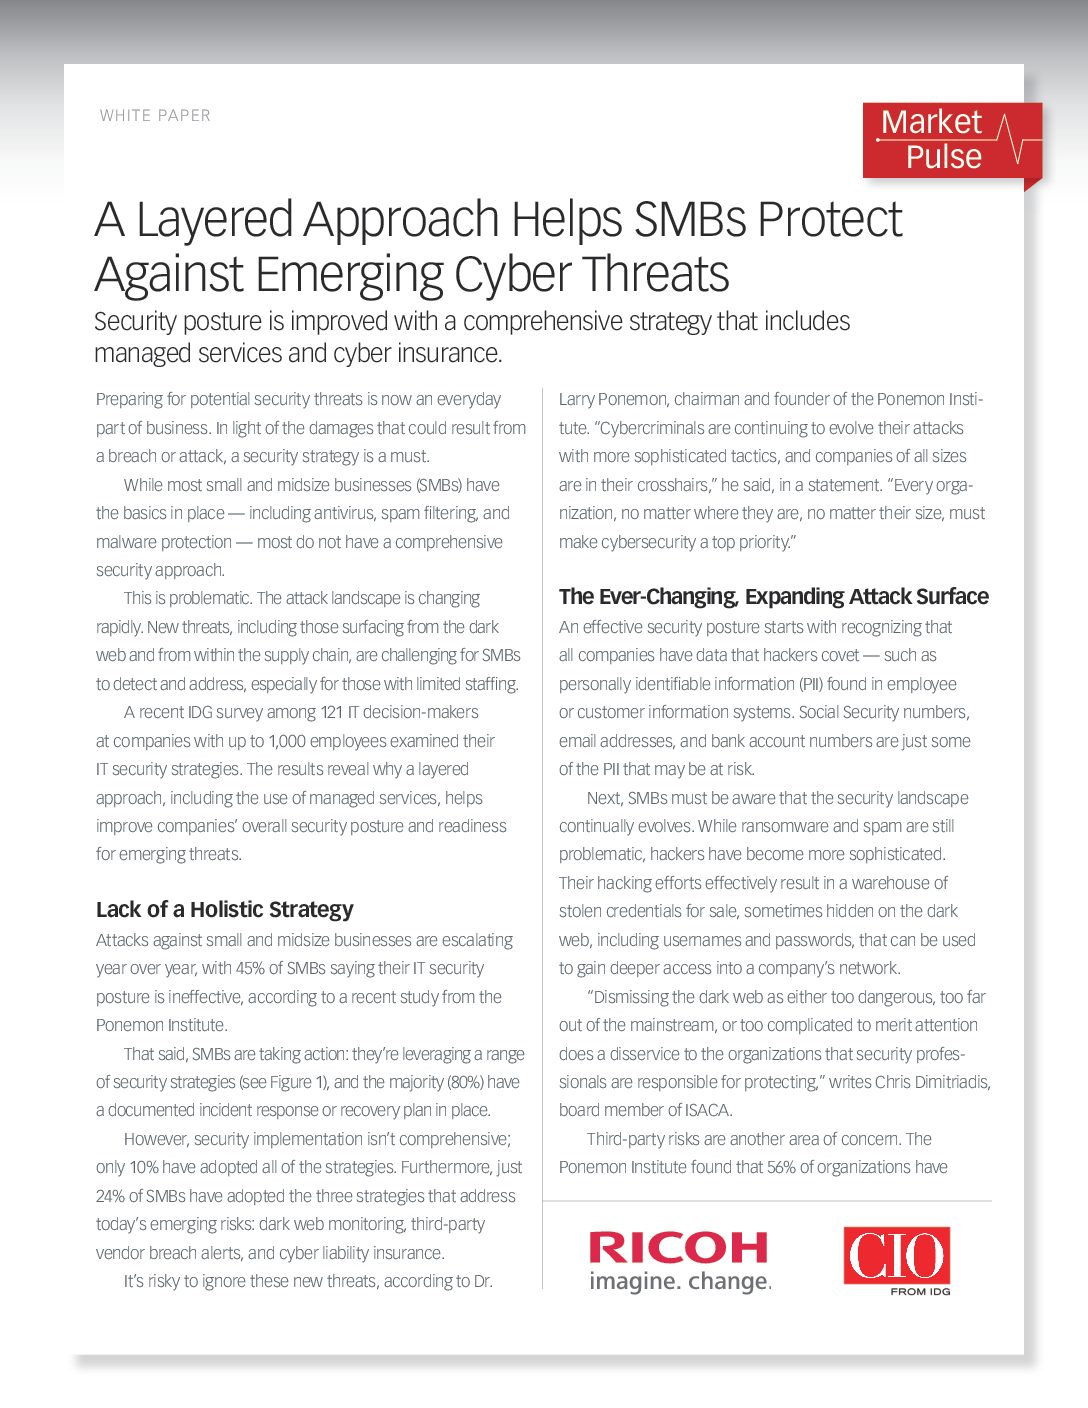 A Layered Approach Helps SMBs Protect Against Emerging Cyber Threats